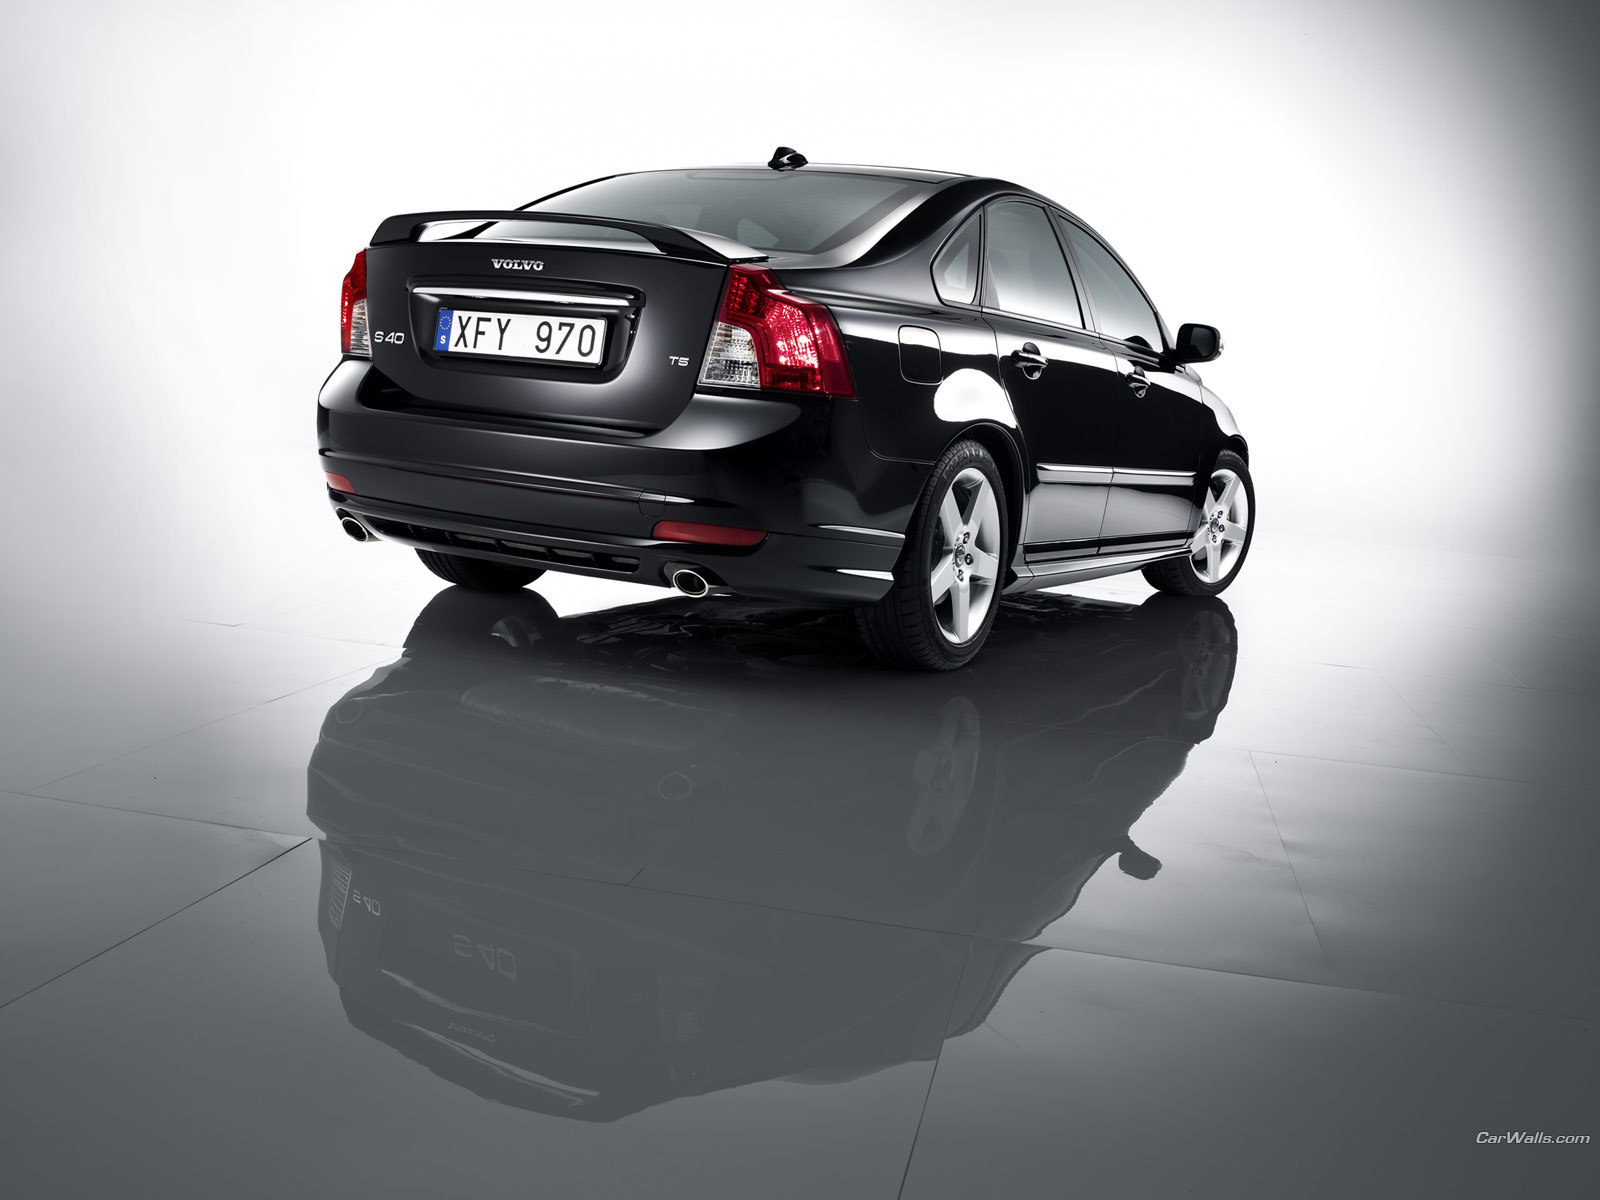 Volvo images S40 R design HD wallpaper and background photos 888232 1600x1200